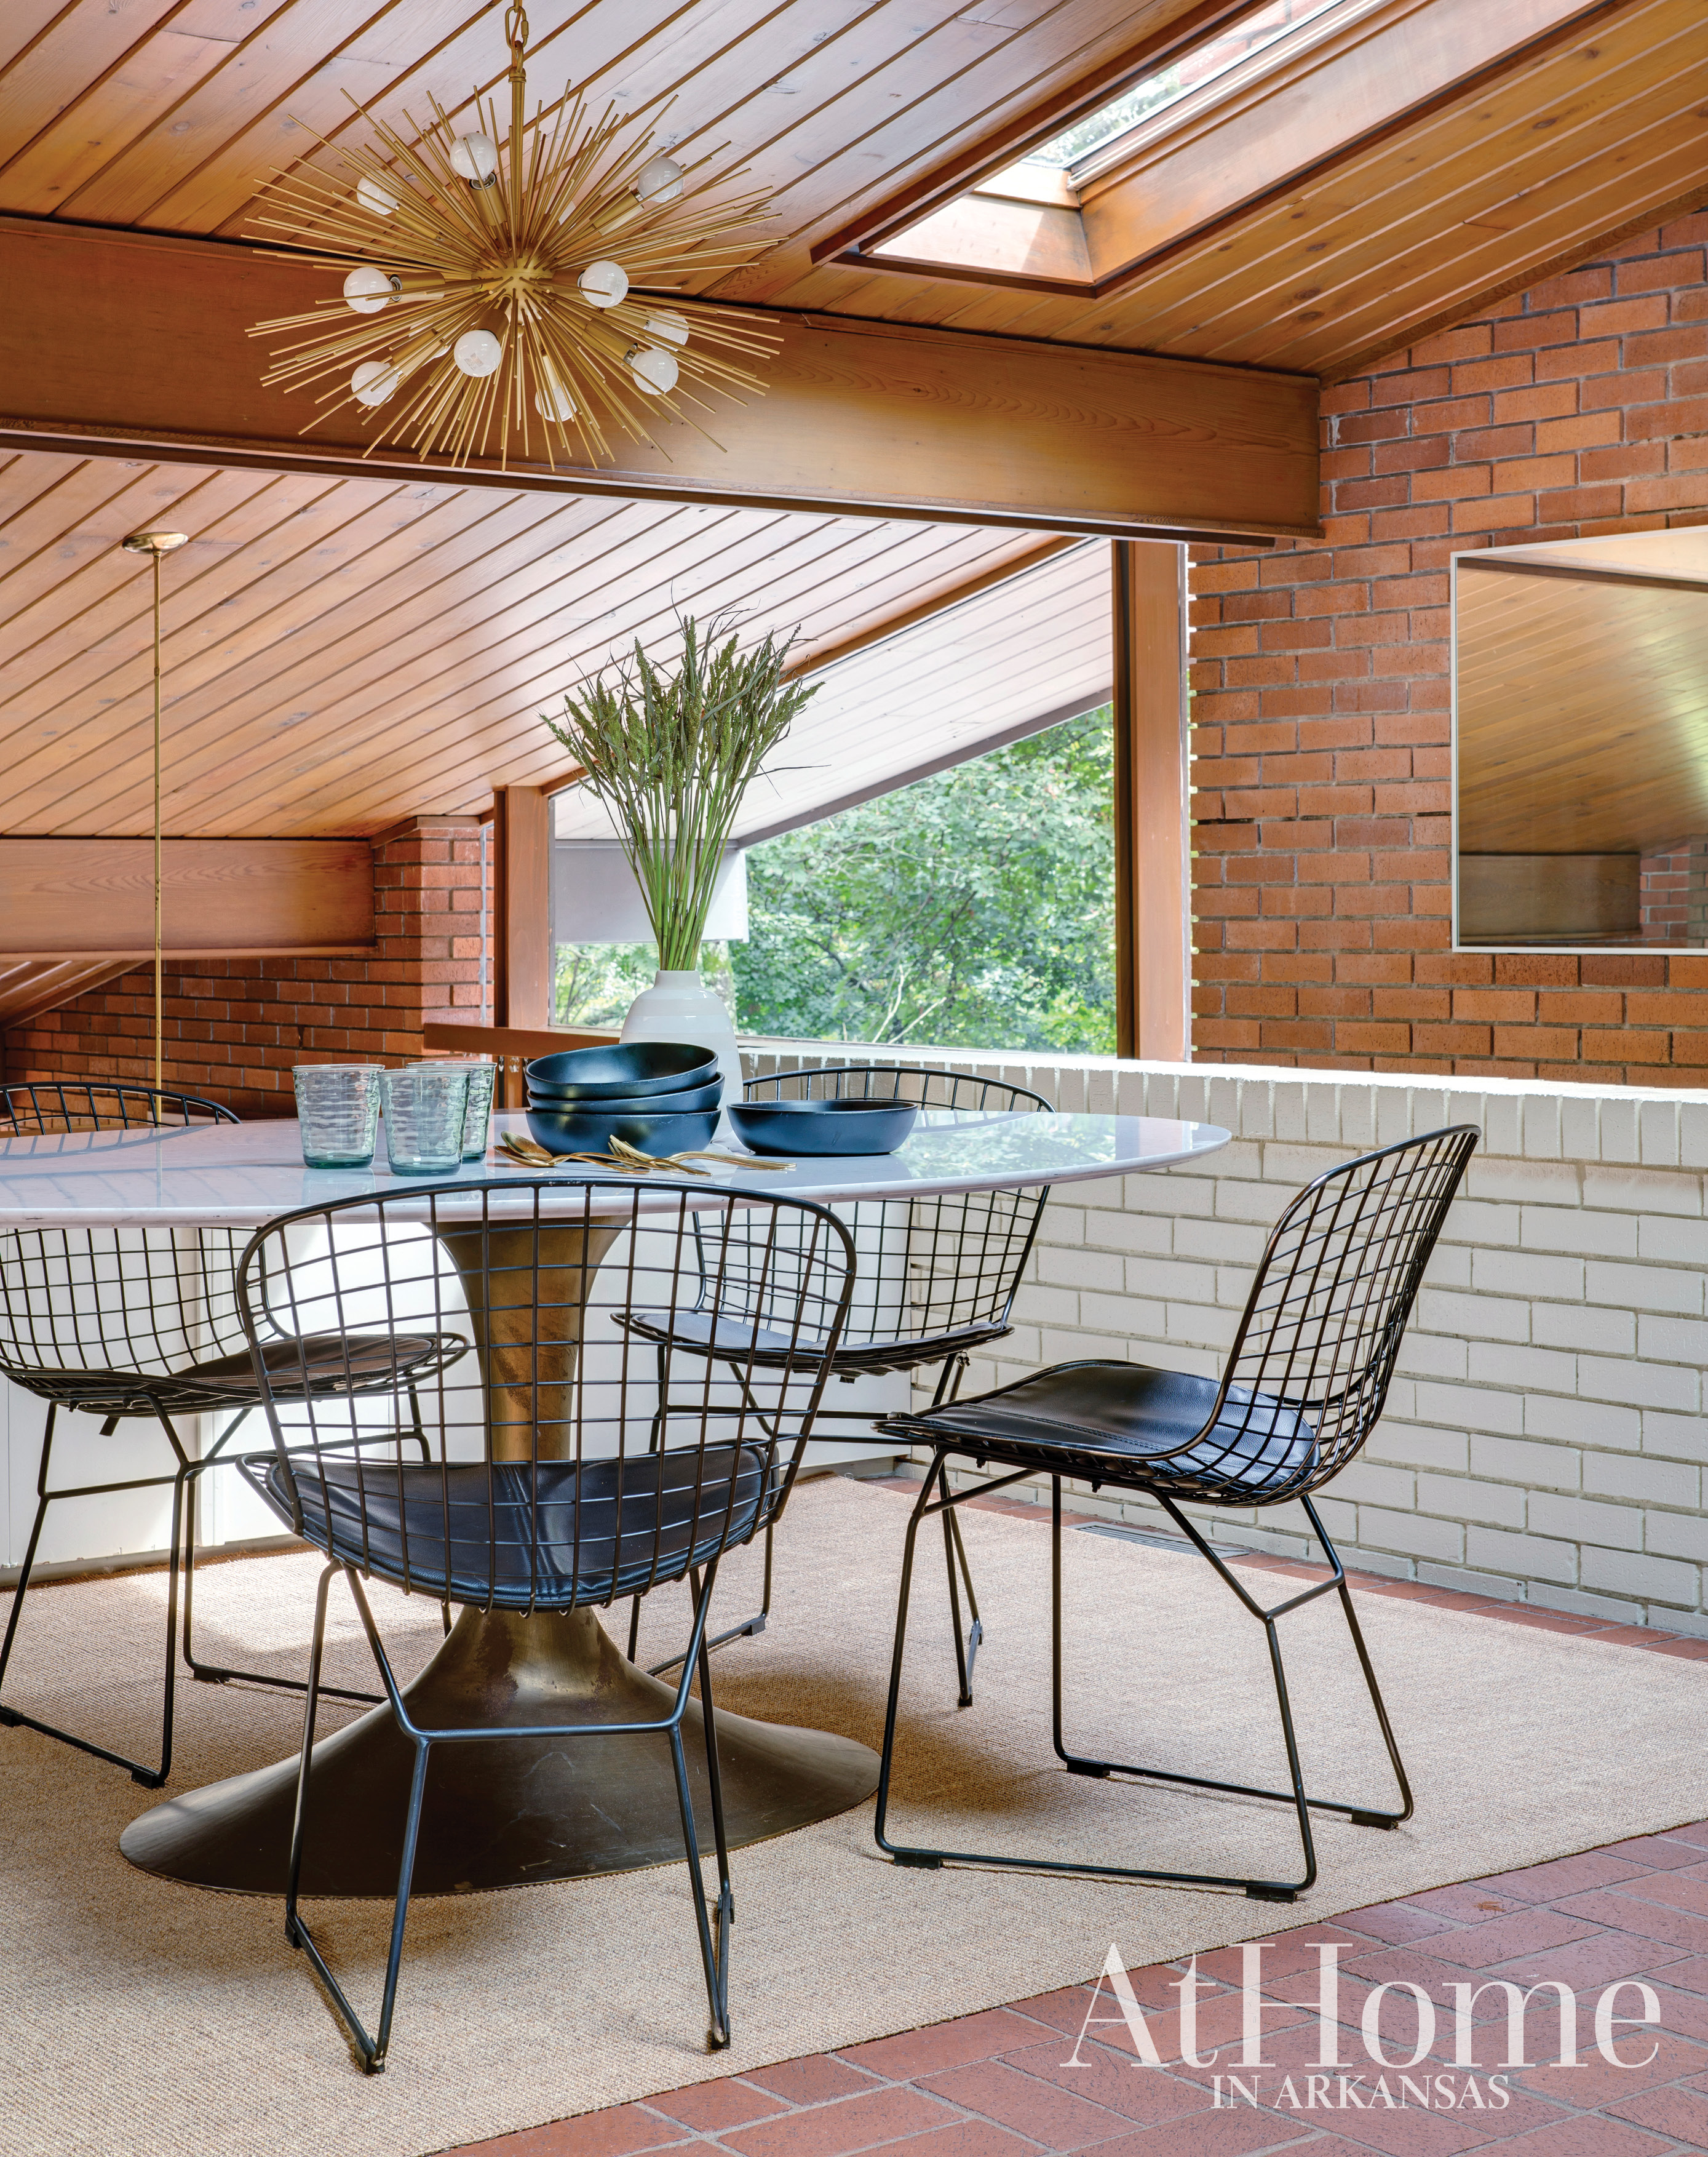 kitchens, dining rooms